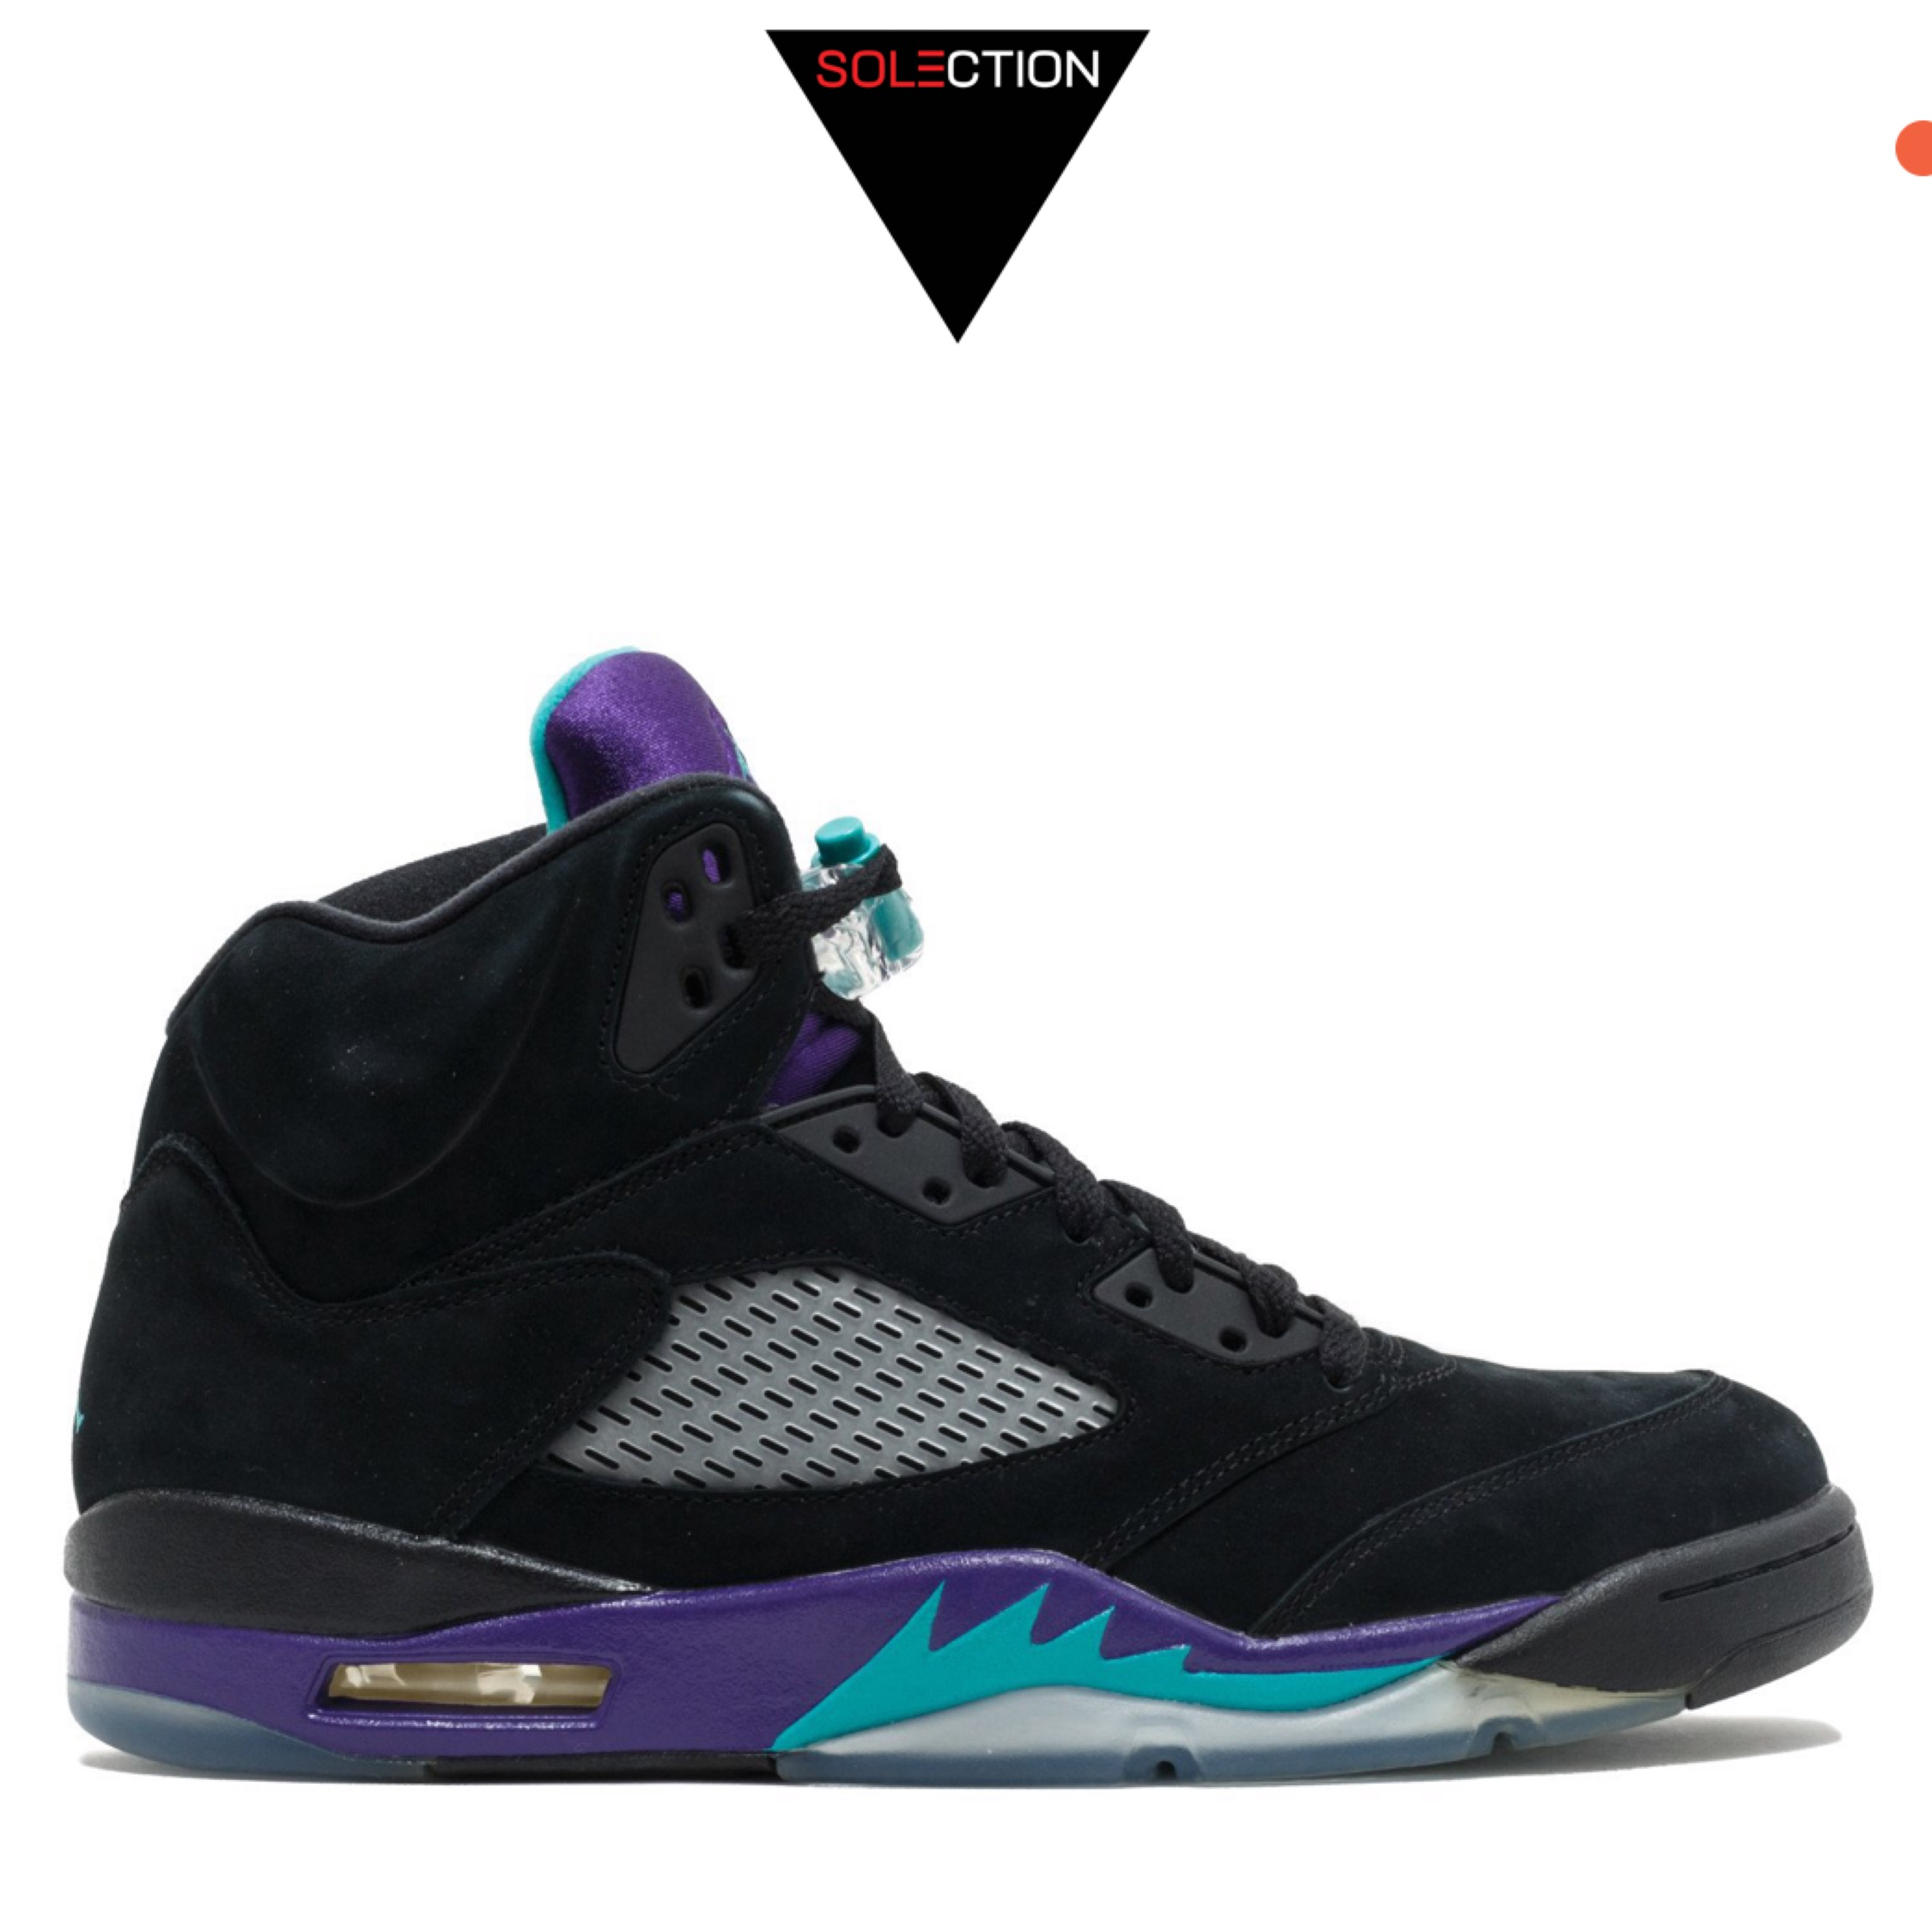 check out ba9c4 6bece Nike Air Jordan 5 Retro Black Grape